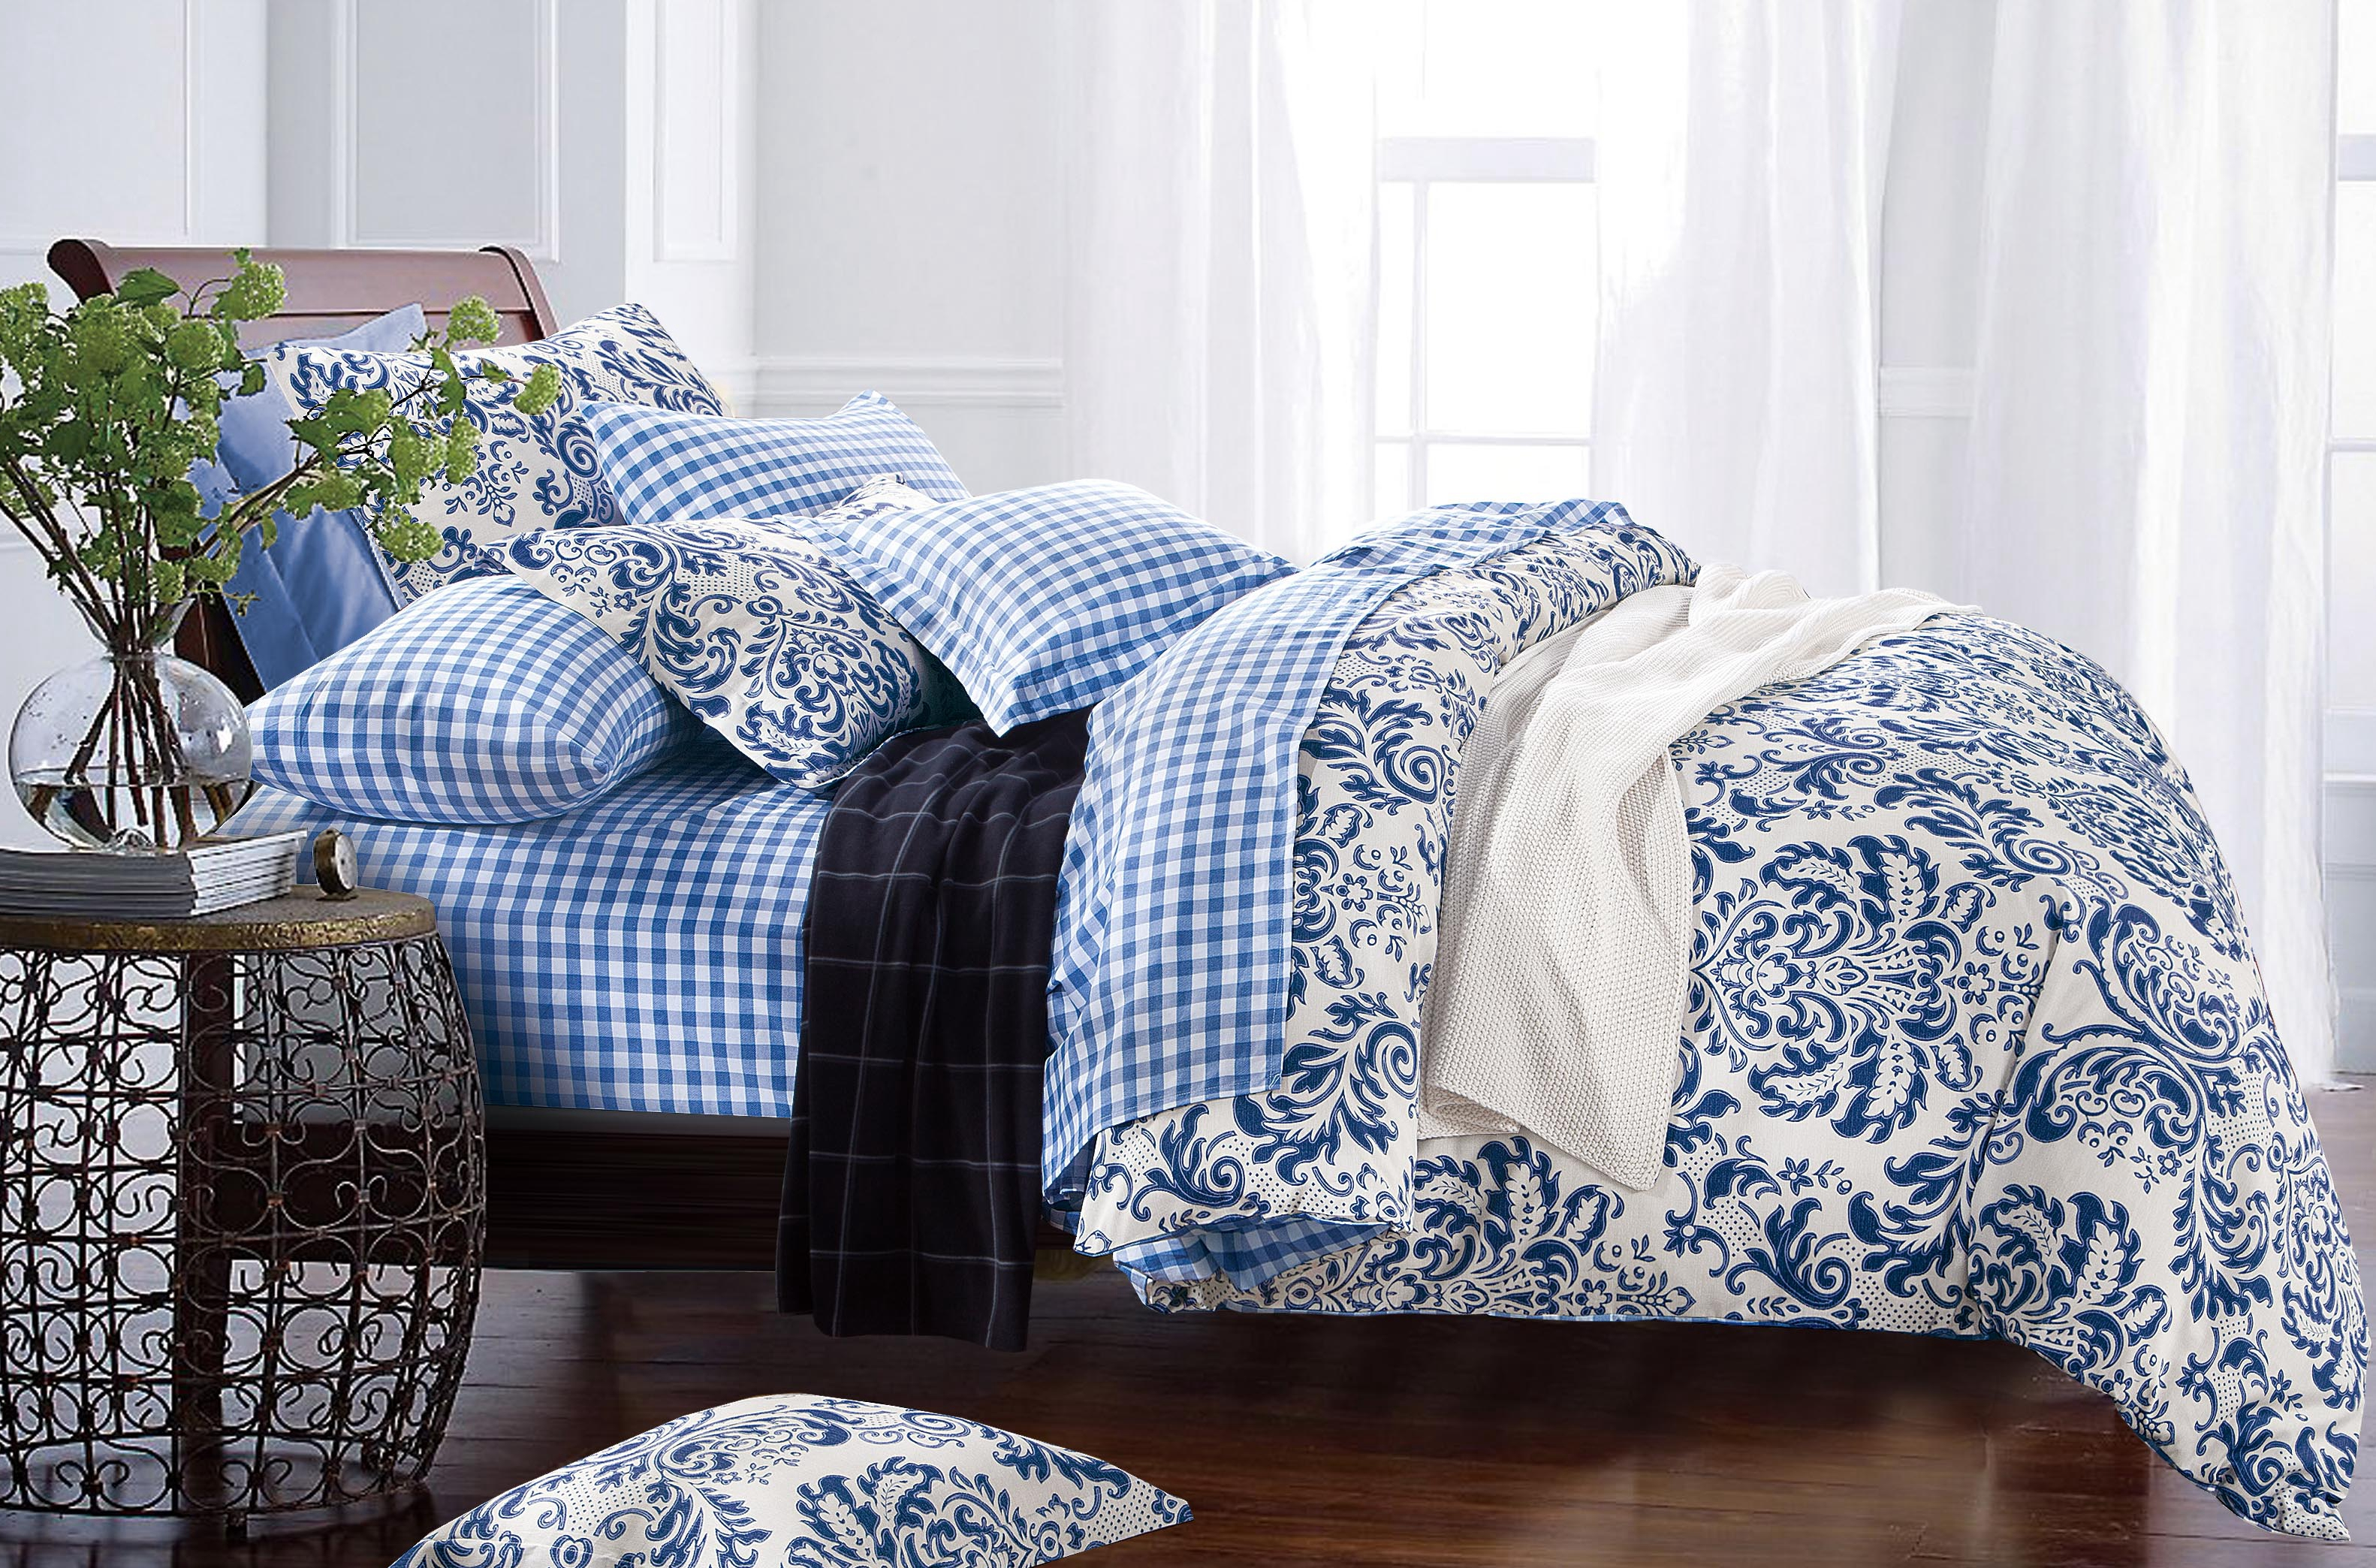 Lenore by Diori Bed Sheet Sets